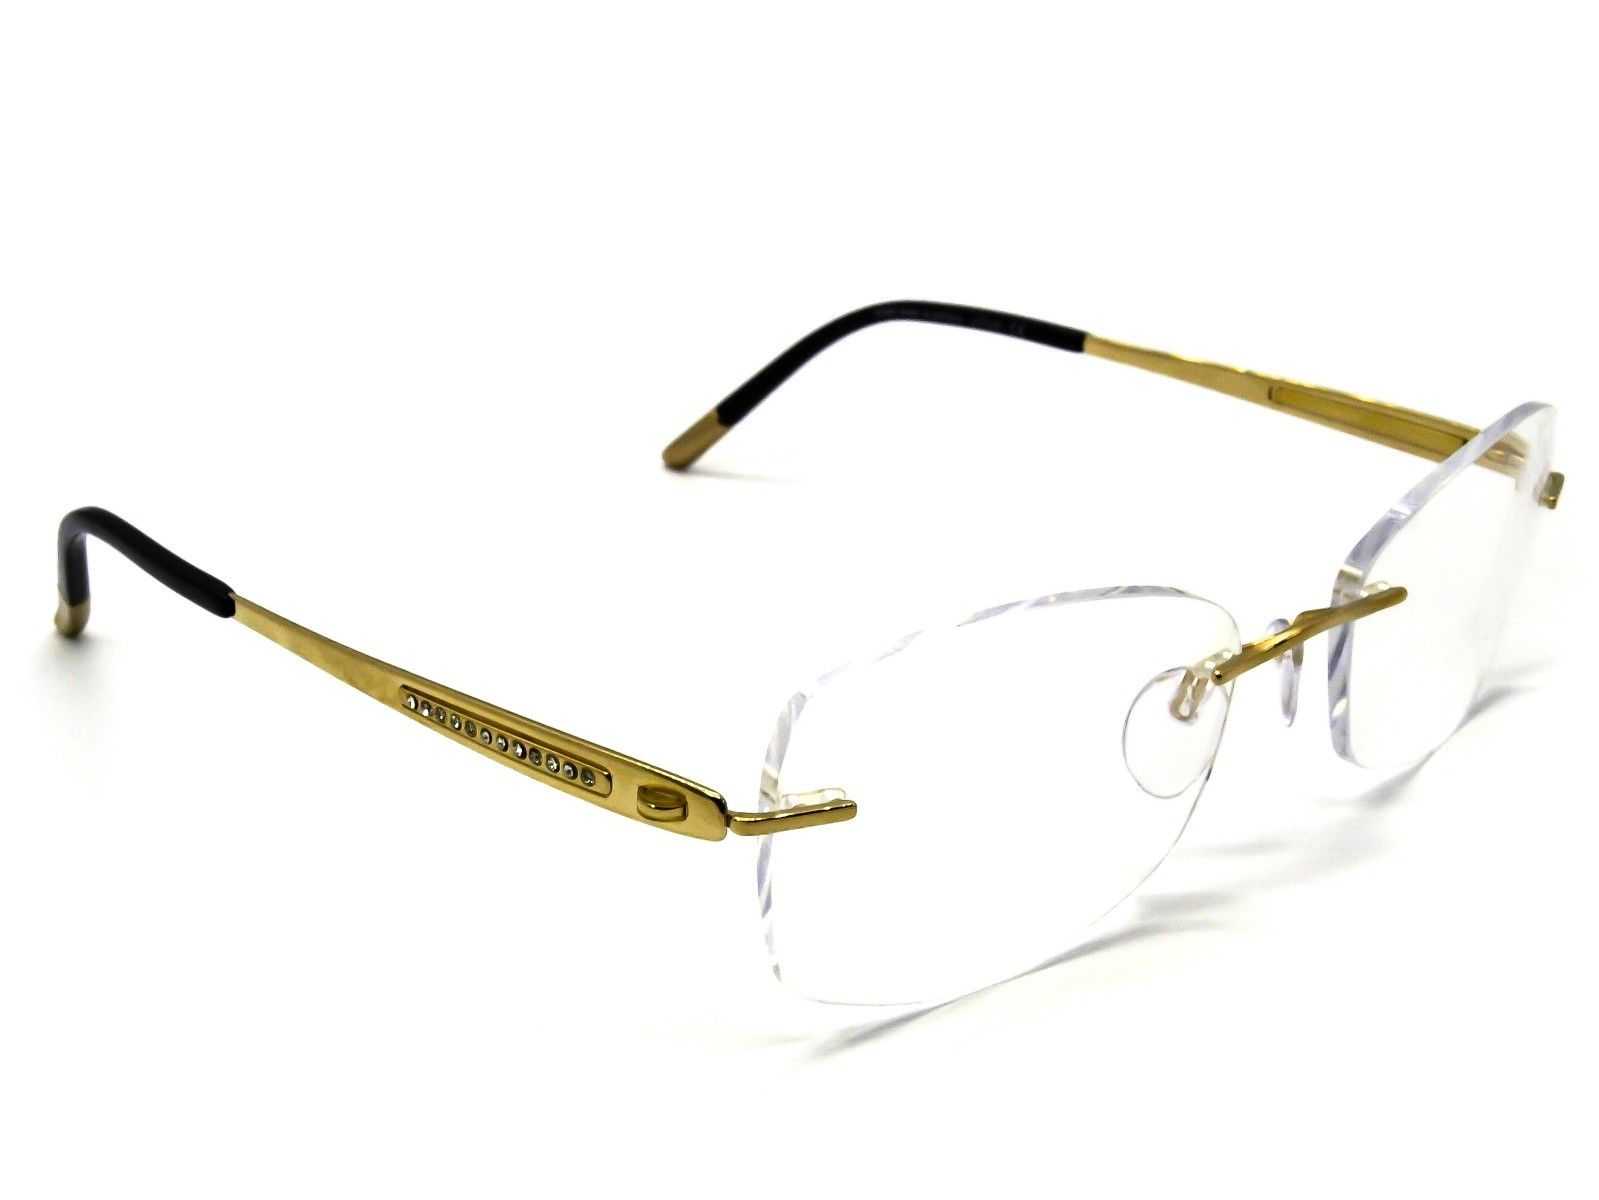 Silhouette  4426 20 6051 23K Gold Plated Eyeglasses